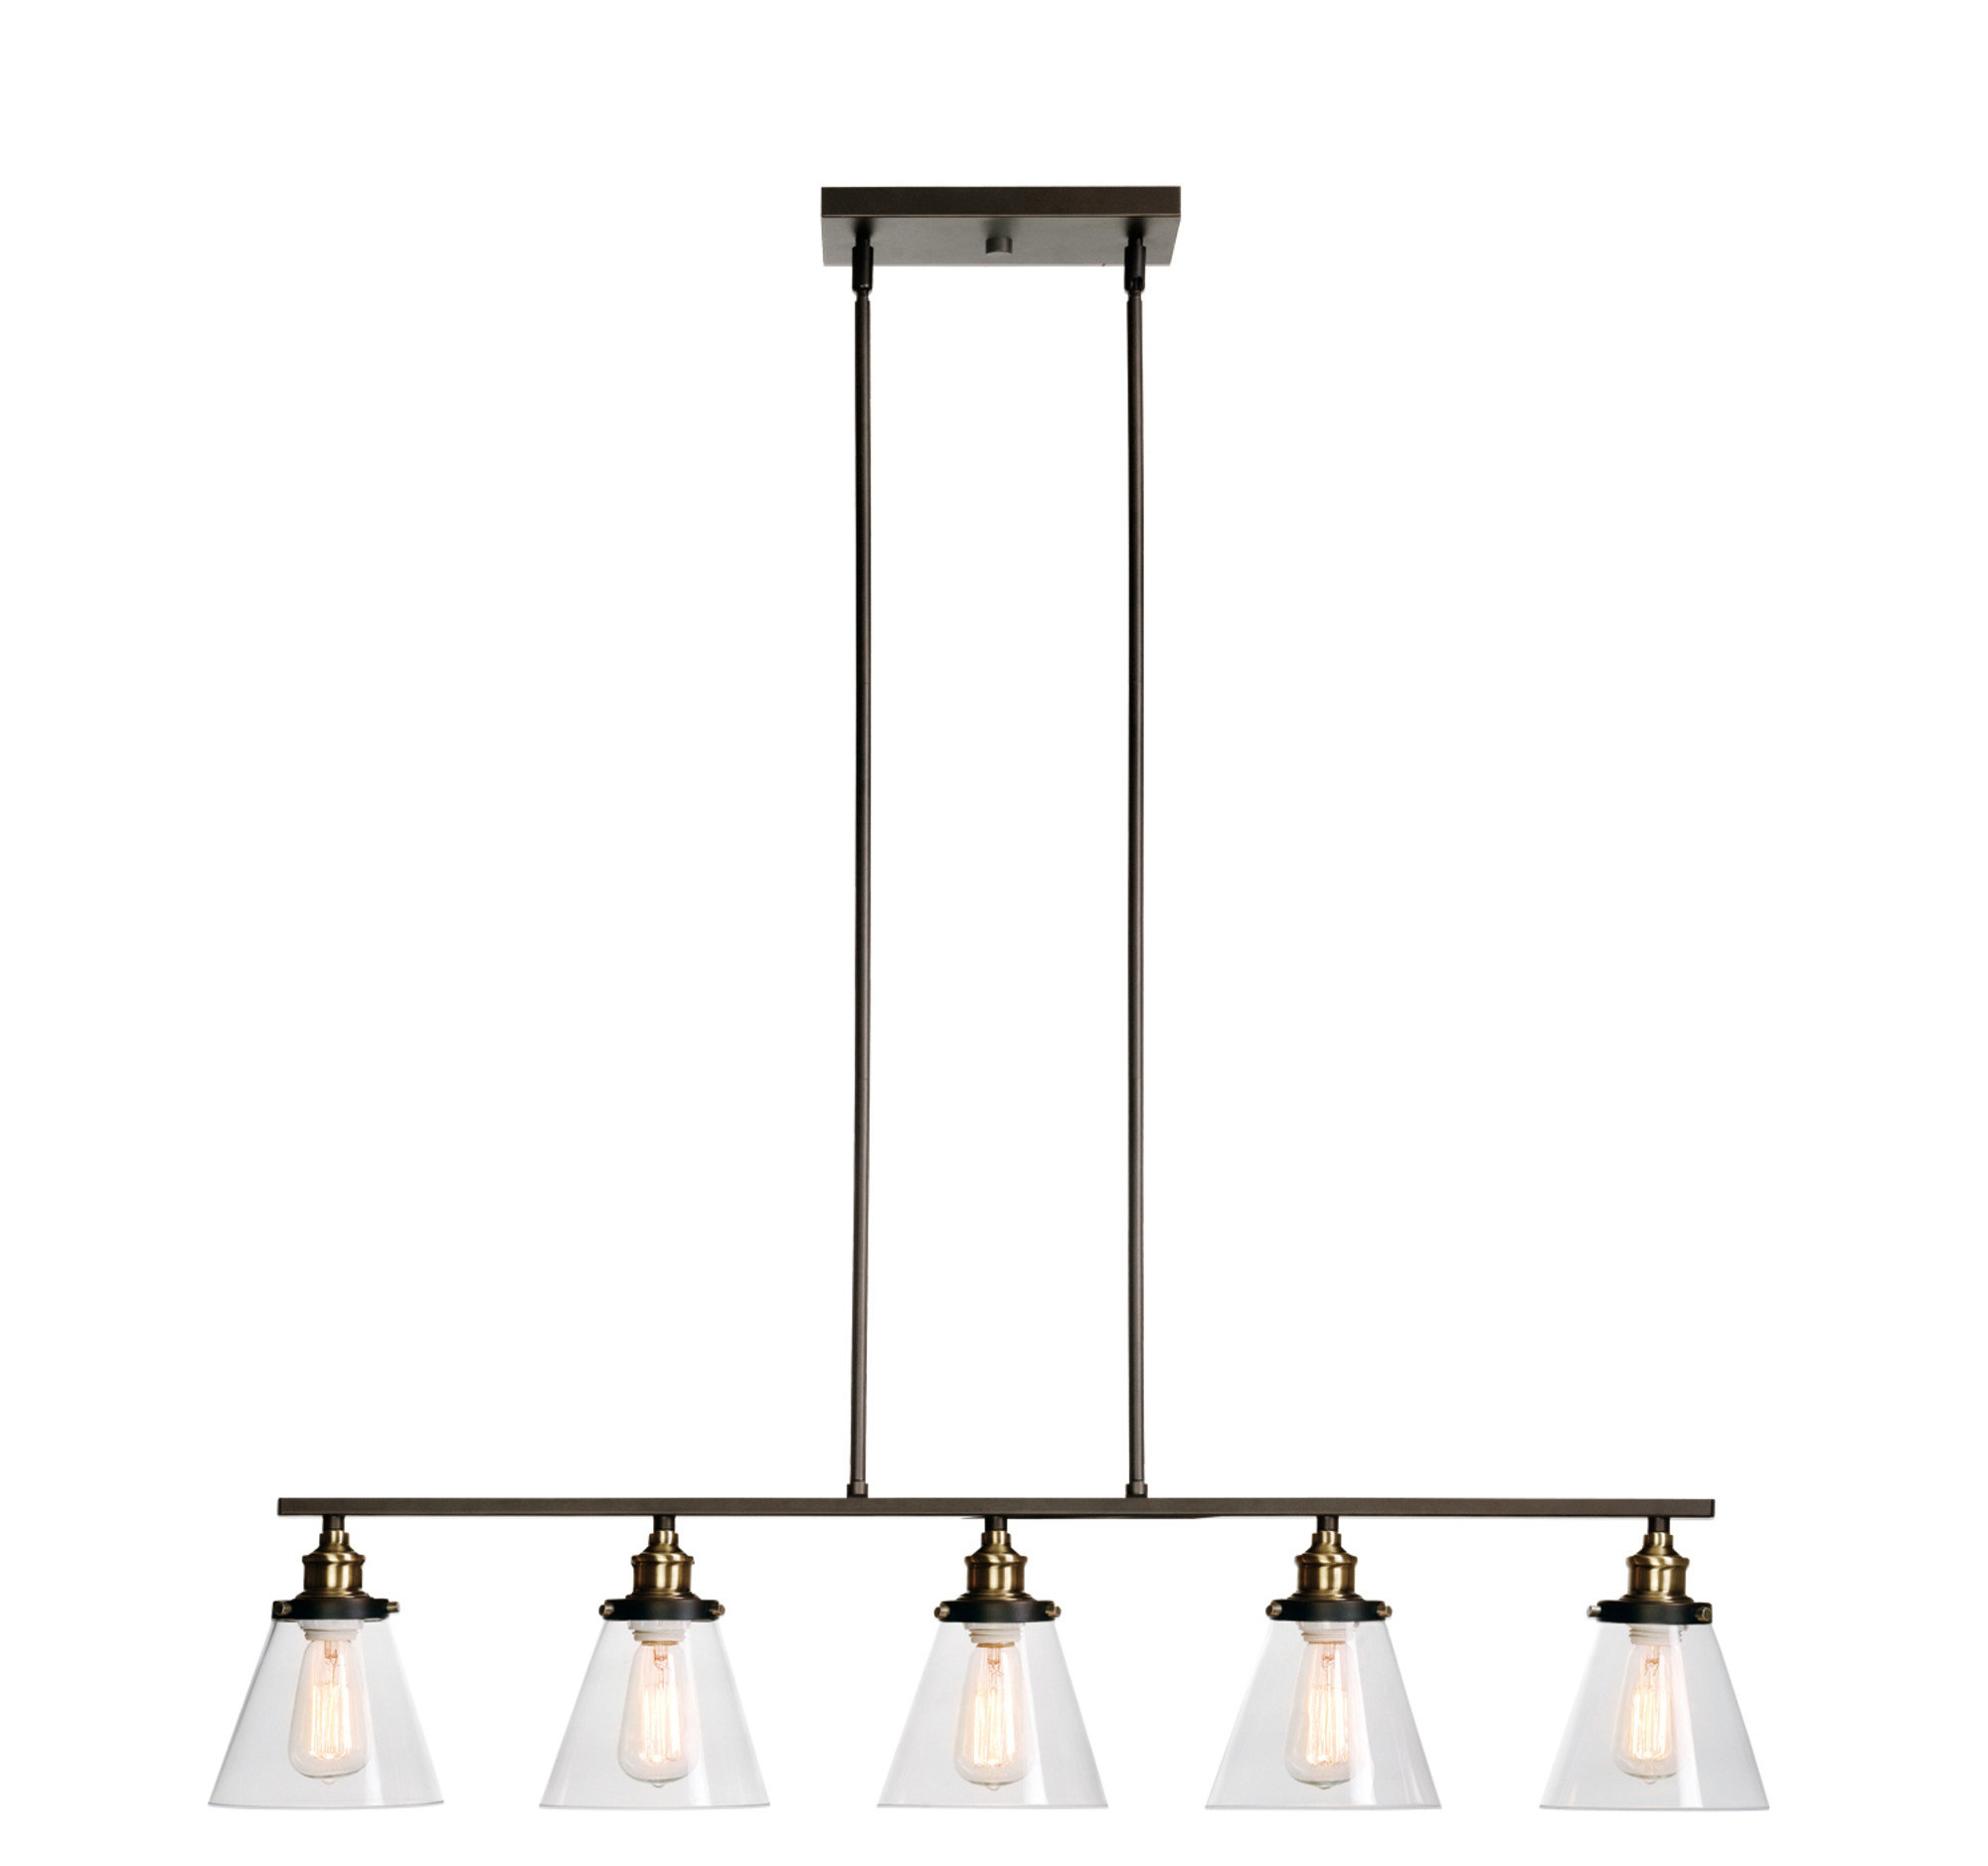 Jackson 5 Light Kitchen Island Linear Pendant Within 2019 Bouvet 5 Light Kitchen Island Linear Pendants (View 16 of 20)